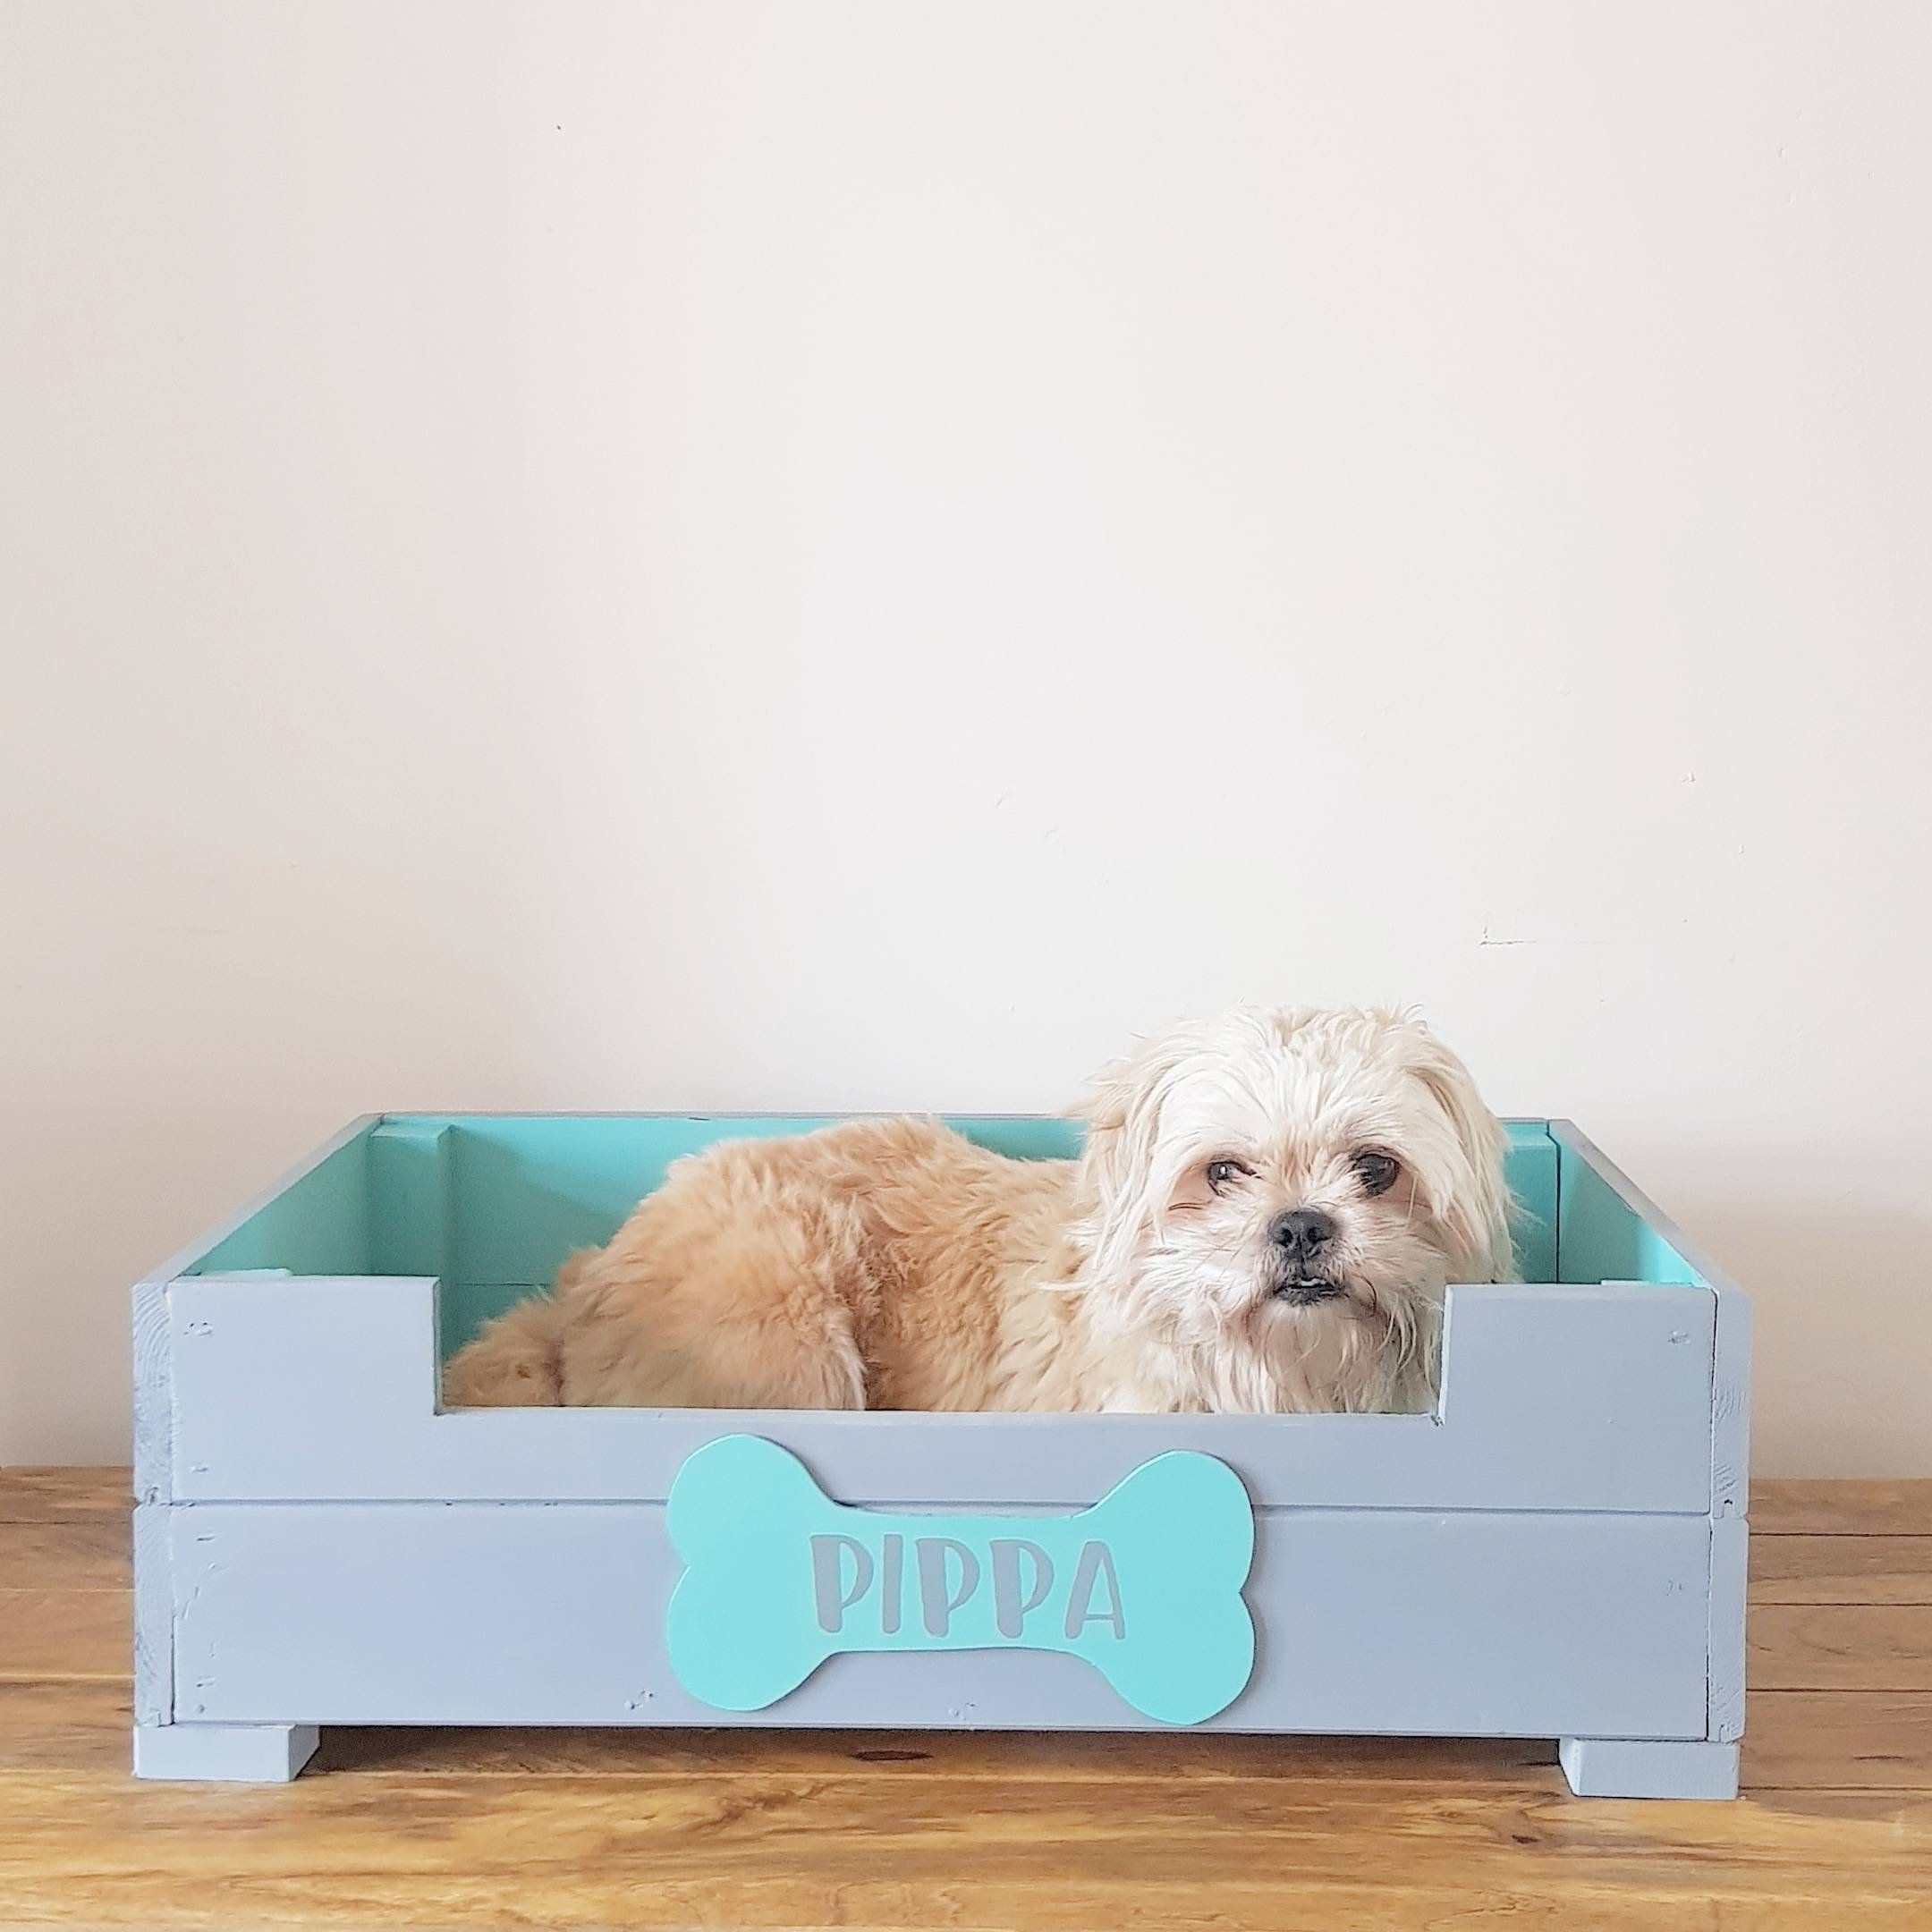 Personalised Dog Bed Wooden Dog Bed Wooden Pet Bed Raised Dog Bed Puppy Must Have Personalized Dog Beds Personalized Pet Gifts Wooden Pet Bed